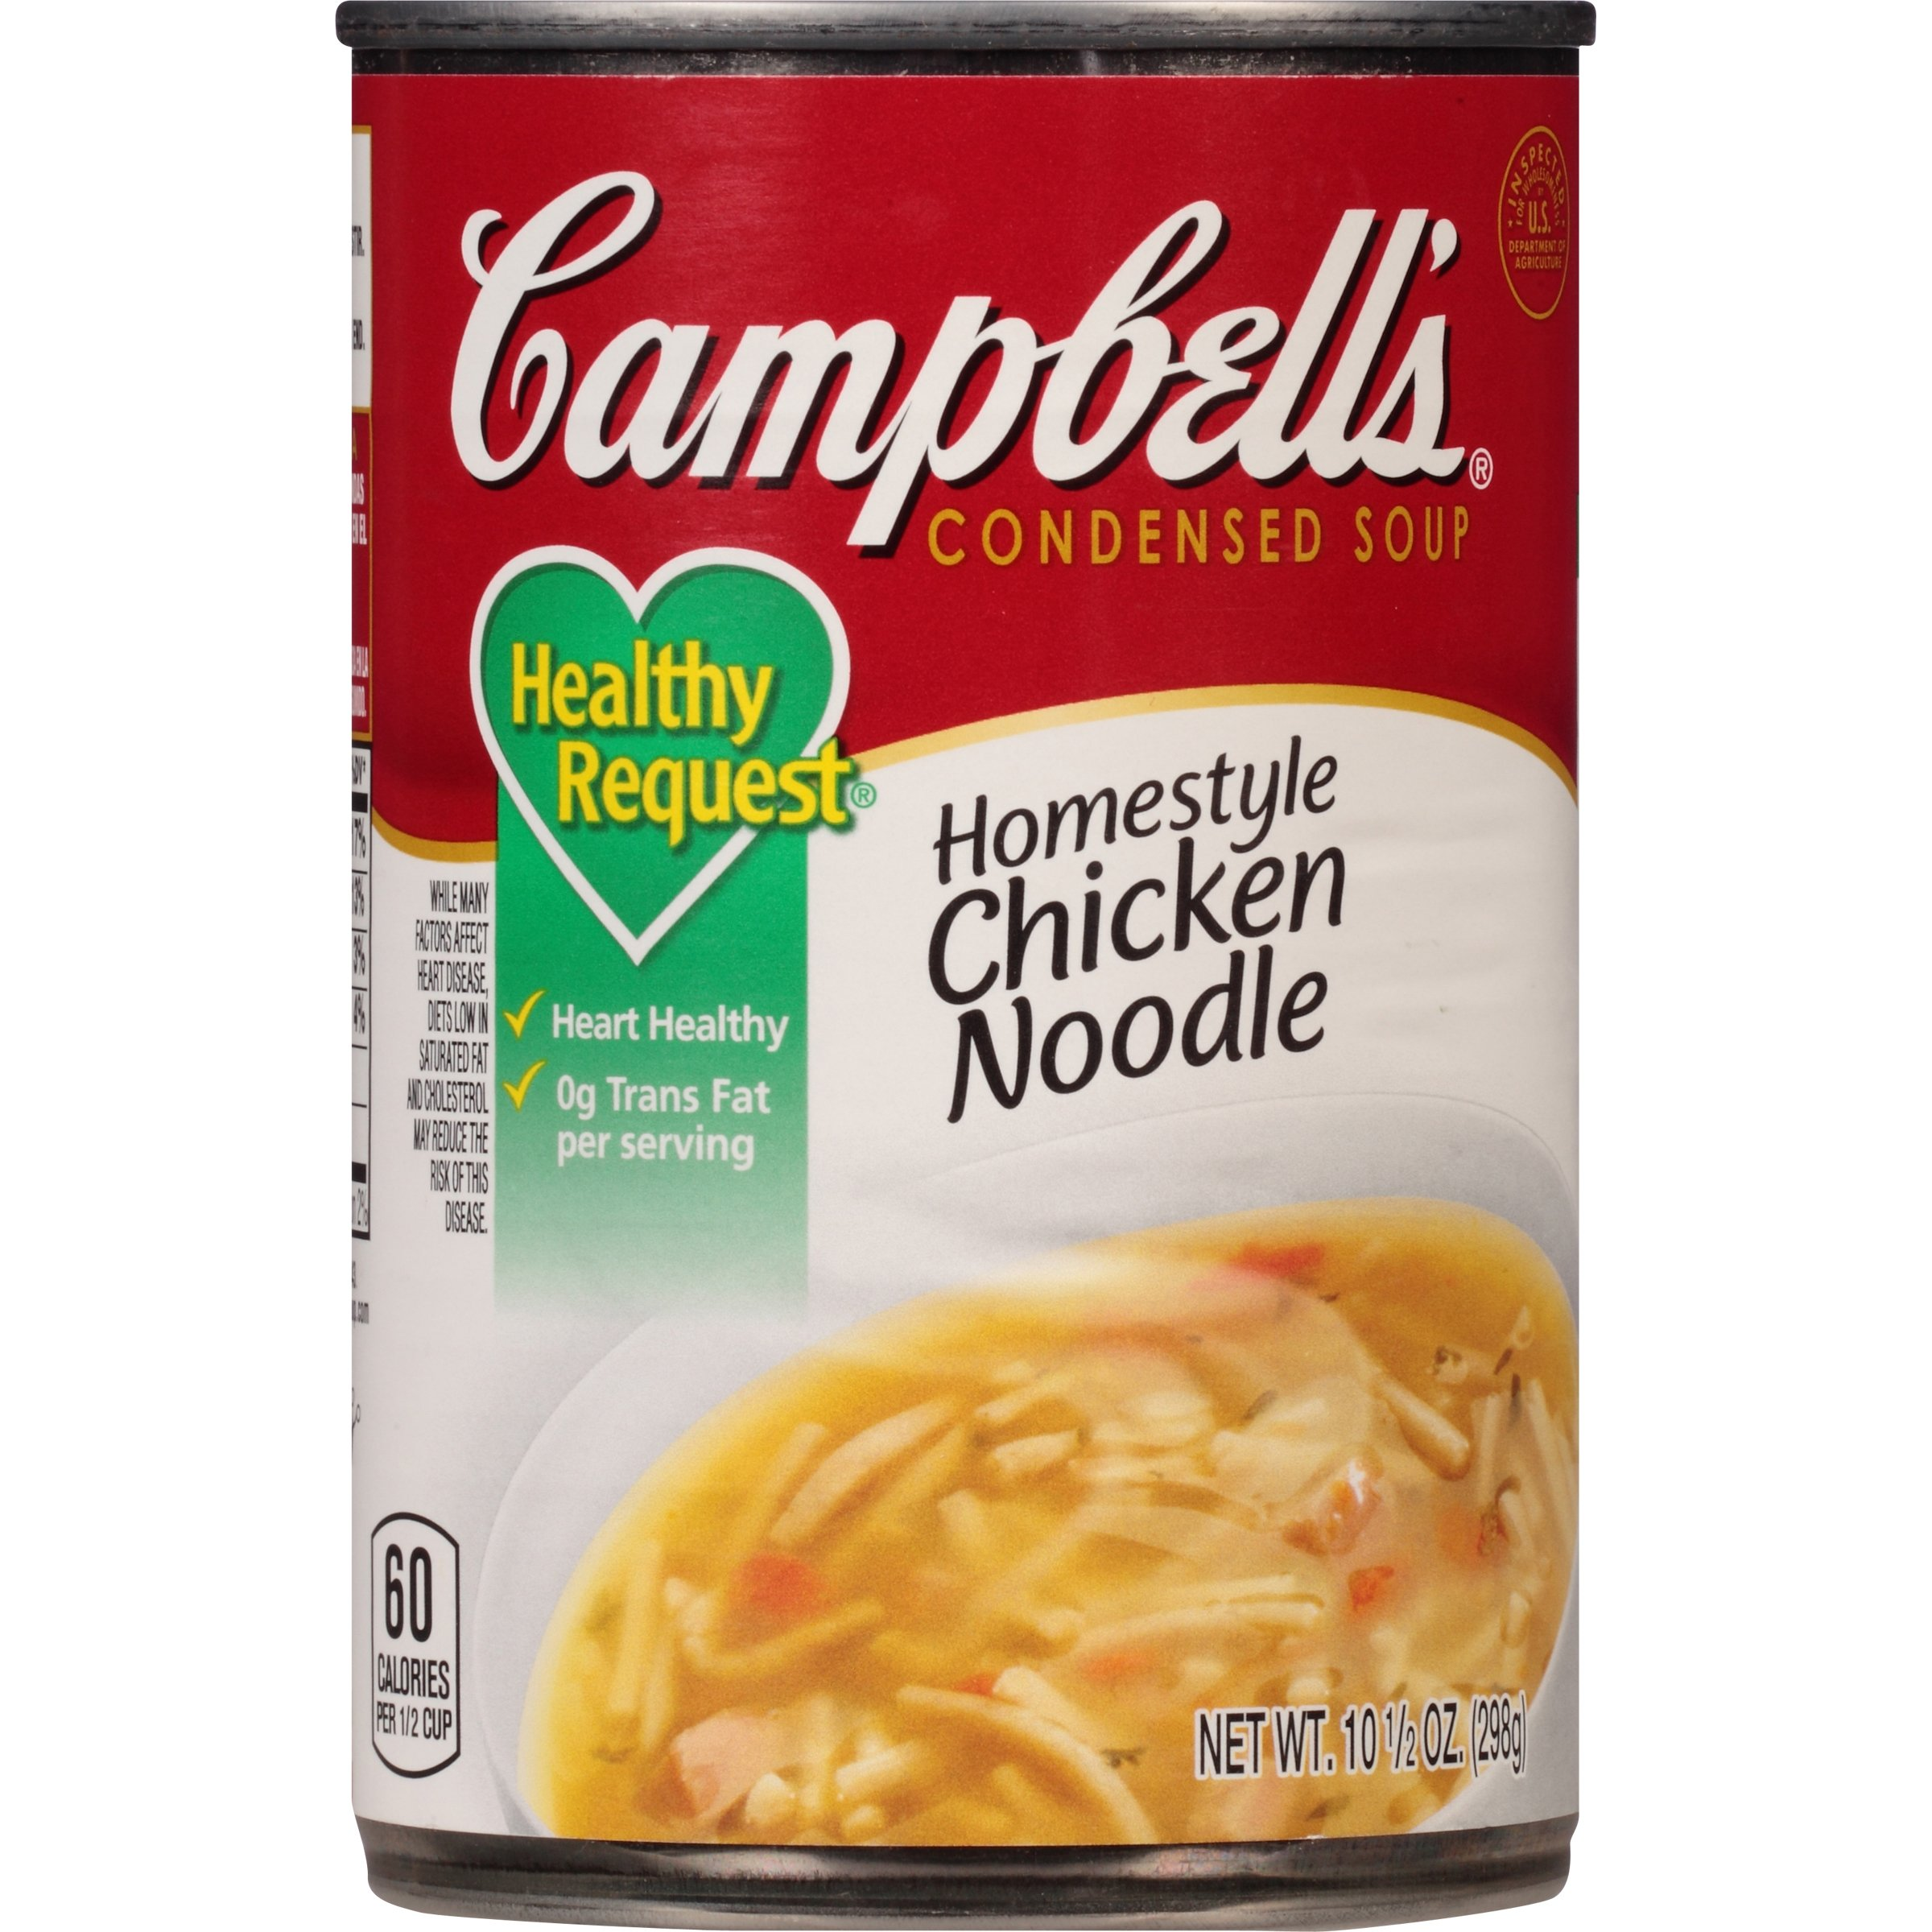 Campbell's Healthy Request Condensed Soup, Homestyle Chicken Noodle, 10.5 Ounce